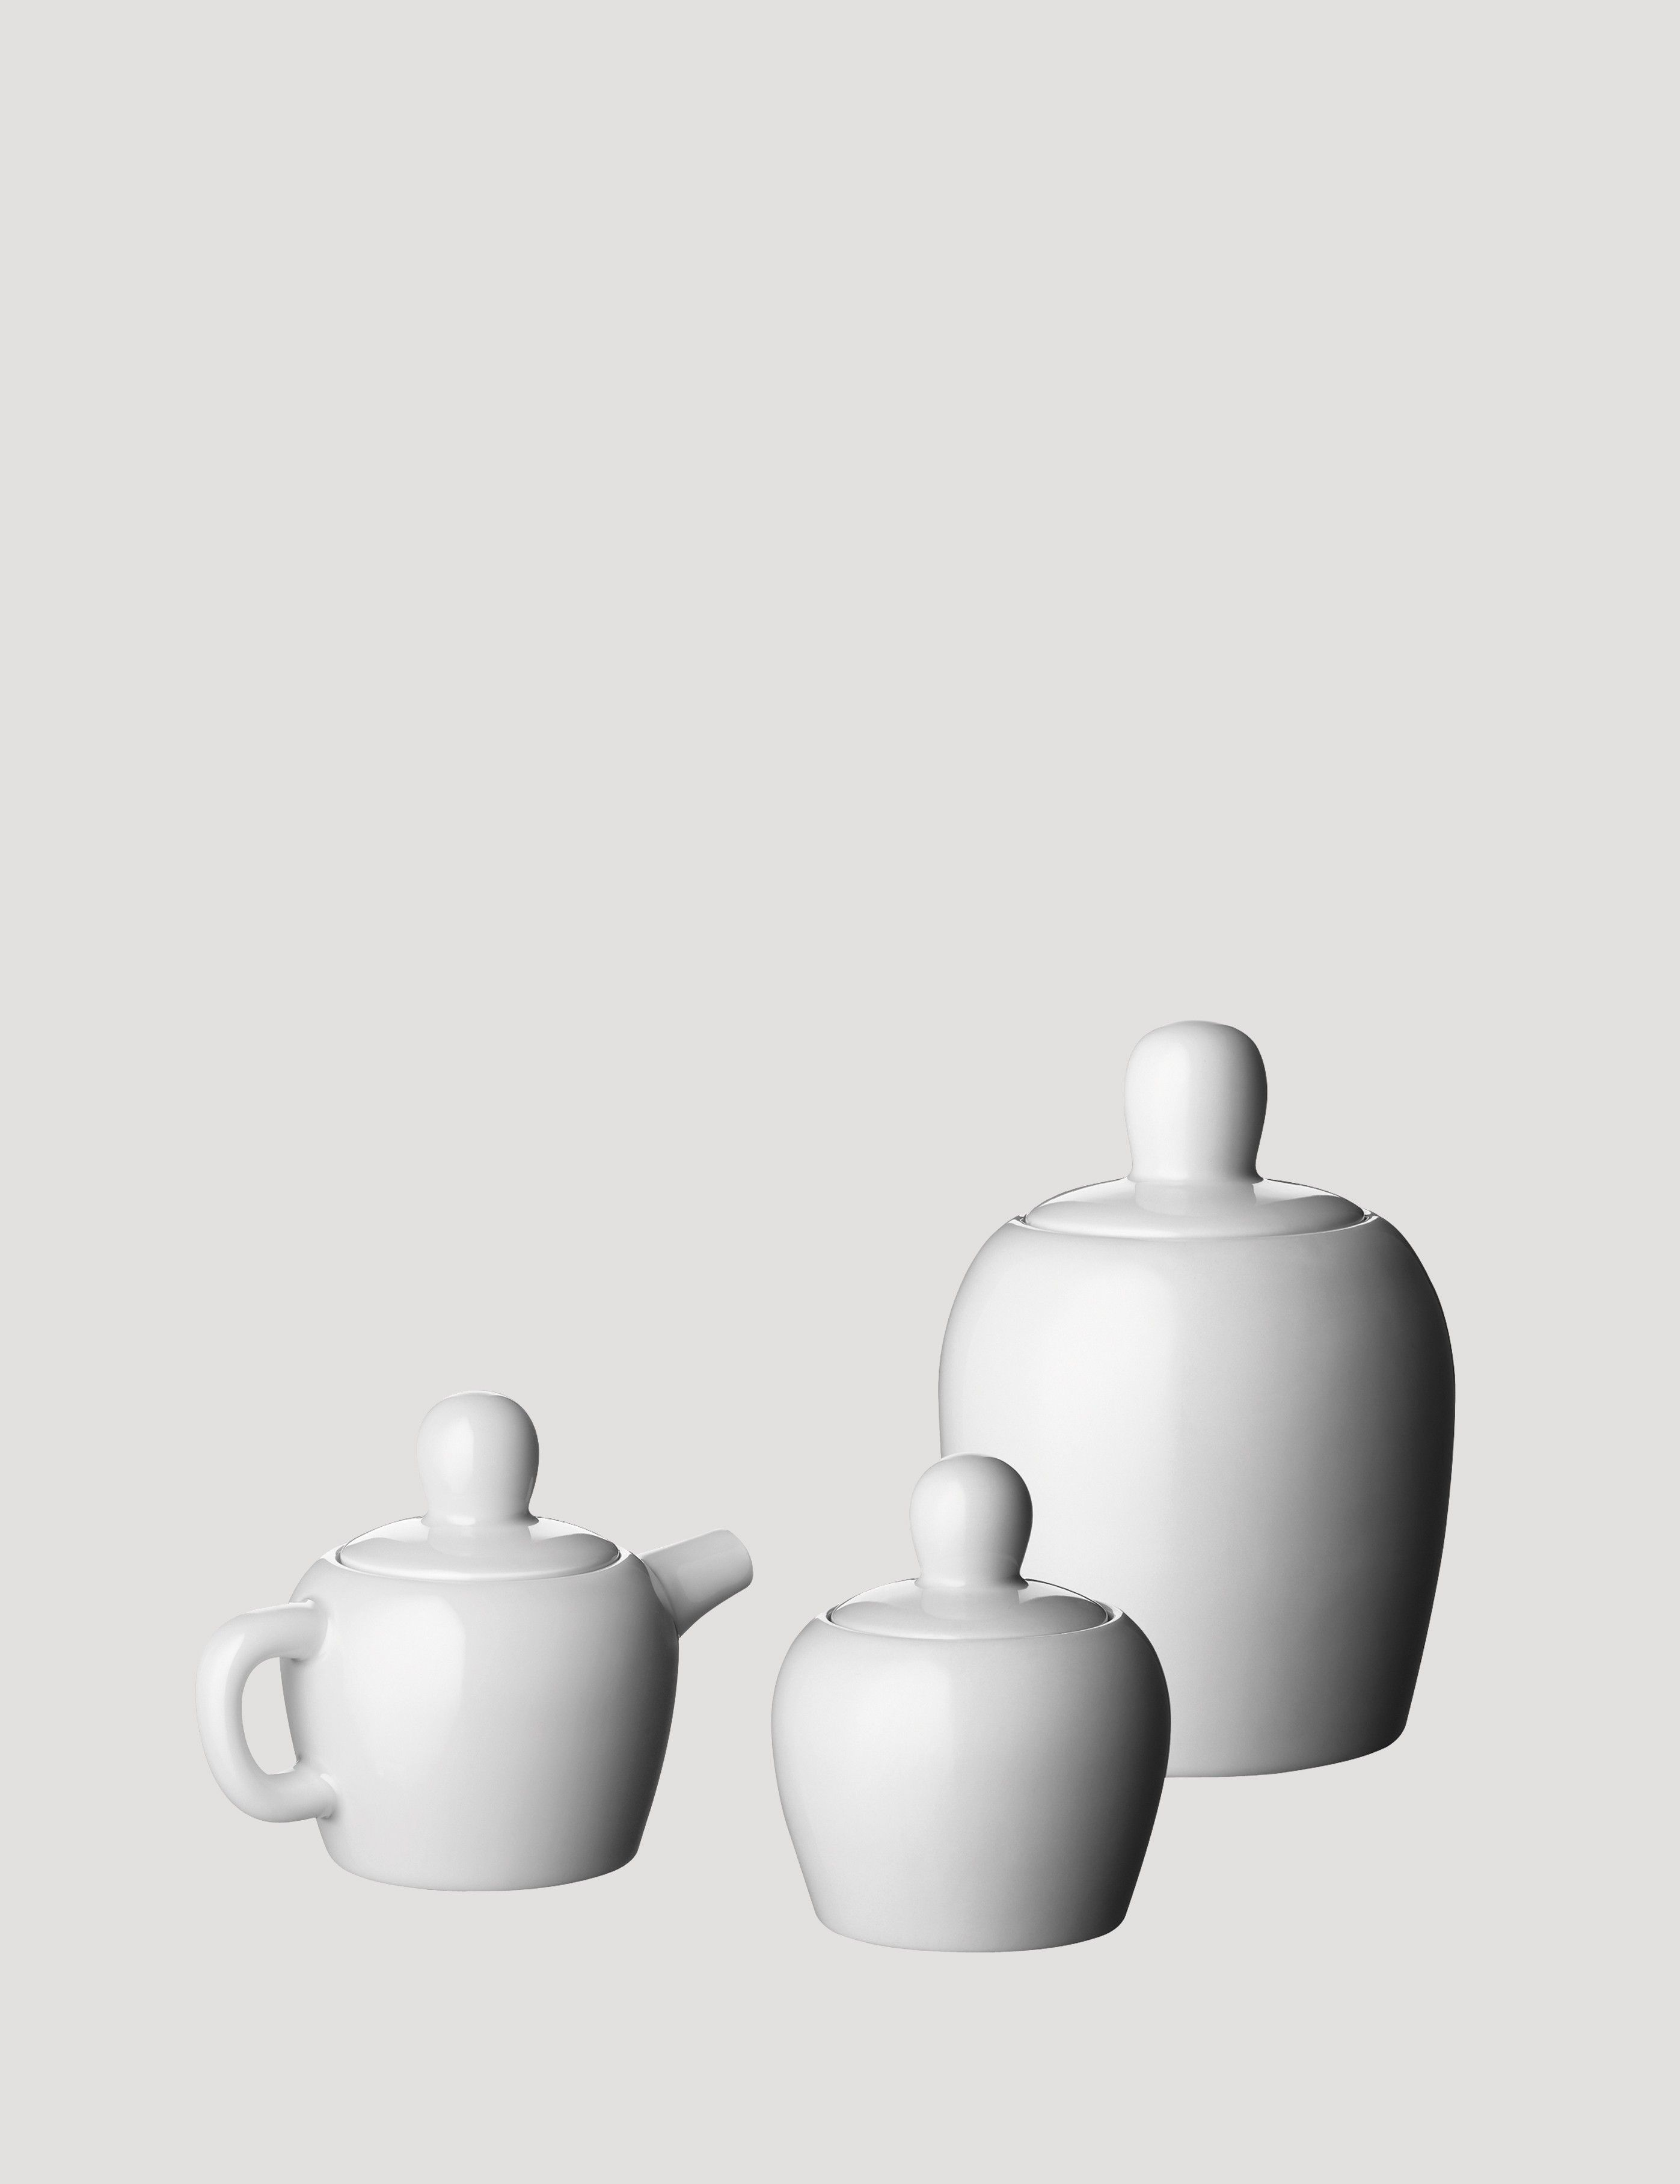 Bulky plays with proportion and shape to create a tea set that adds fun and lightness to the kitchen or table setting. Made from porcelain, the playful design concept is inspired by children's fairy tales. The Bulky tea set consists of a tea pot, tea cup, sugar bowl, milk jug and cookie jar.